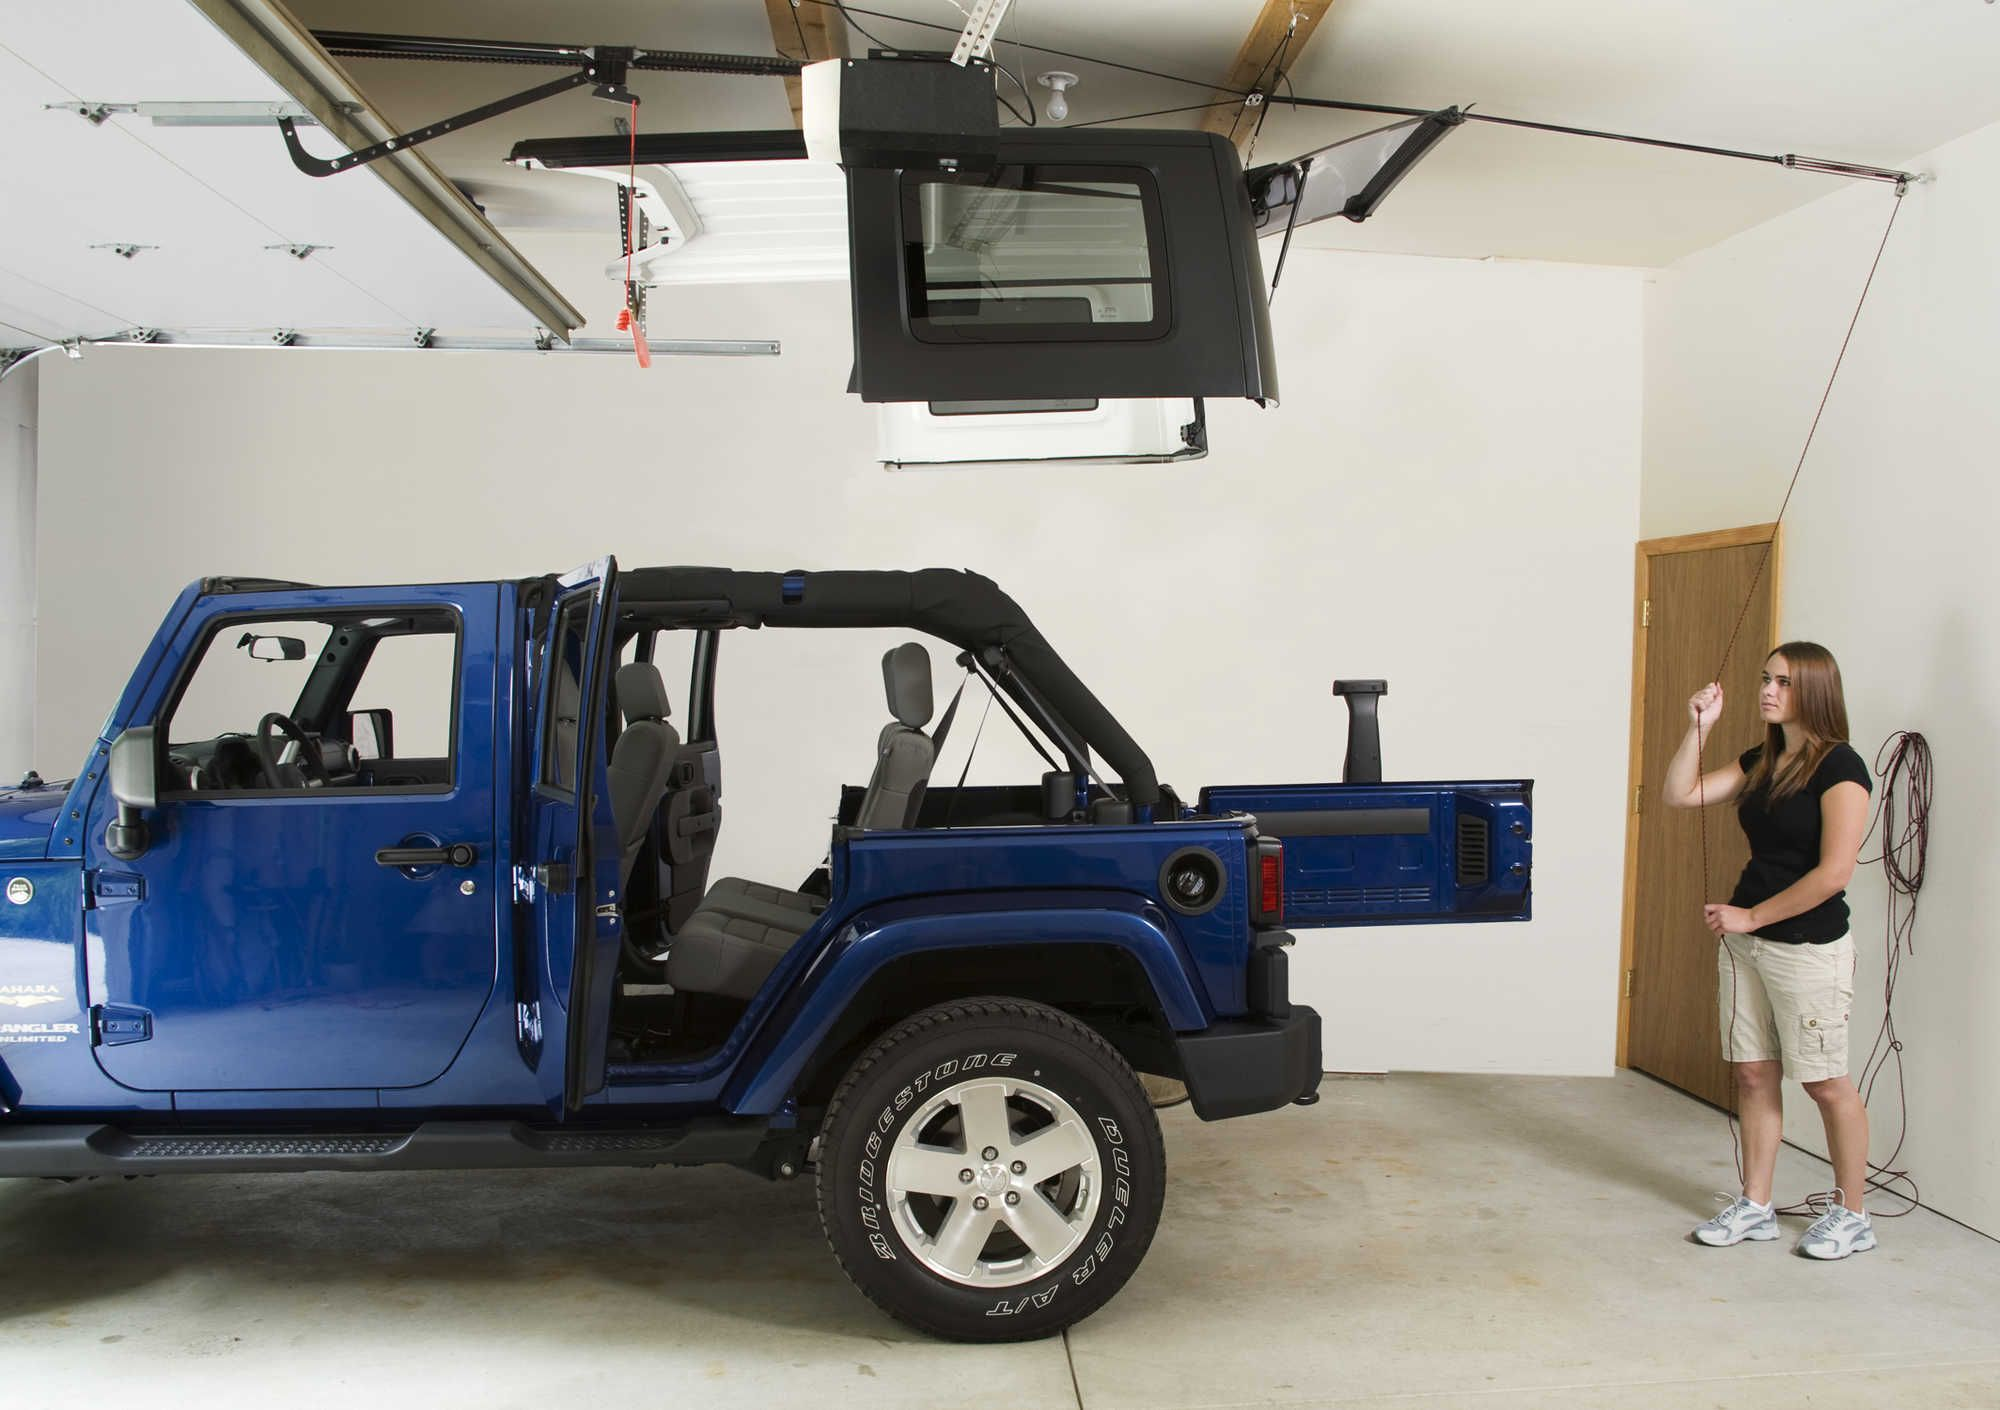 Harken 7803 Jeep Hoister Garage Storage 4 Point Lift System For 87 20 Jeep Wrangler Jl Jk Tj Yj Jeep Wrangler Garage Storage Jeep